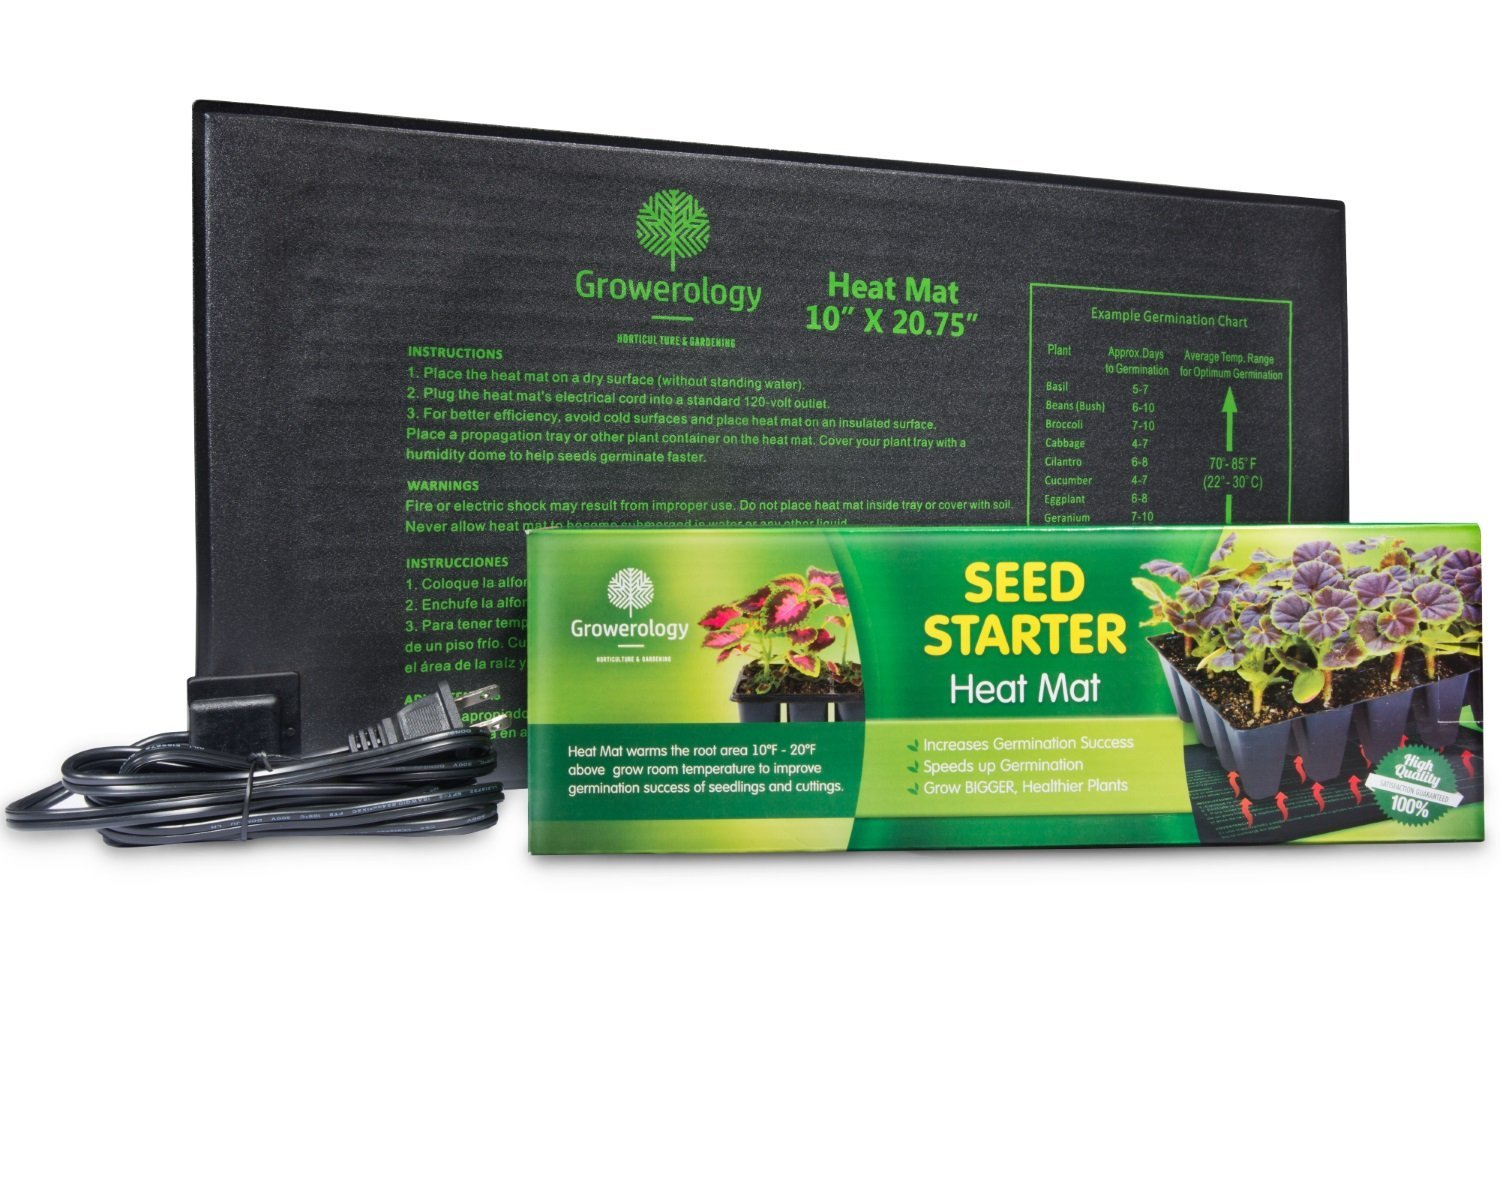 Growerology Seedling Heat Mat For Seed Germination Diagram Of Related Keywords Cloning And Plant Propagation Bonus Insulation Underlayment Garden Outdoor